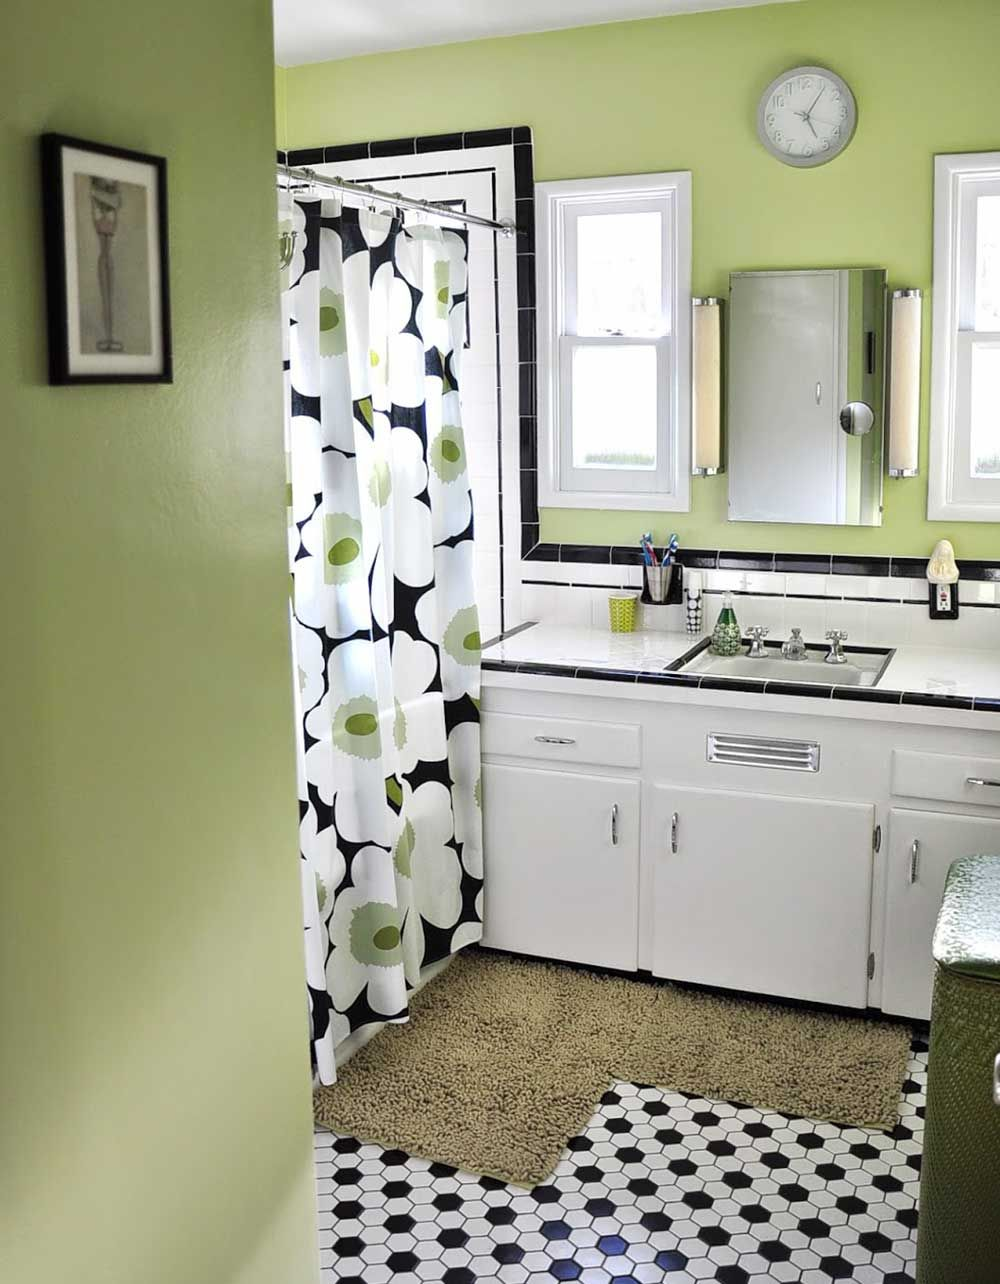 Black and white tile bathrooms - done 6 different ways | What s, Eye ...